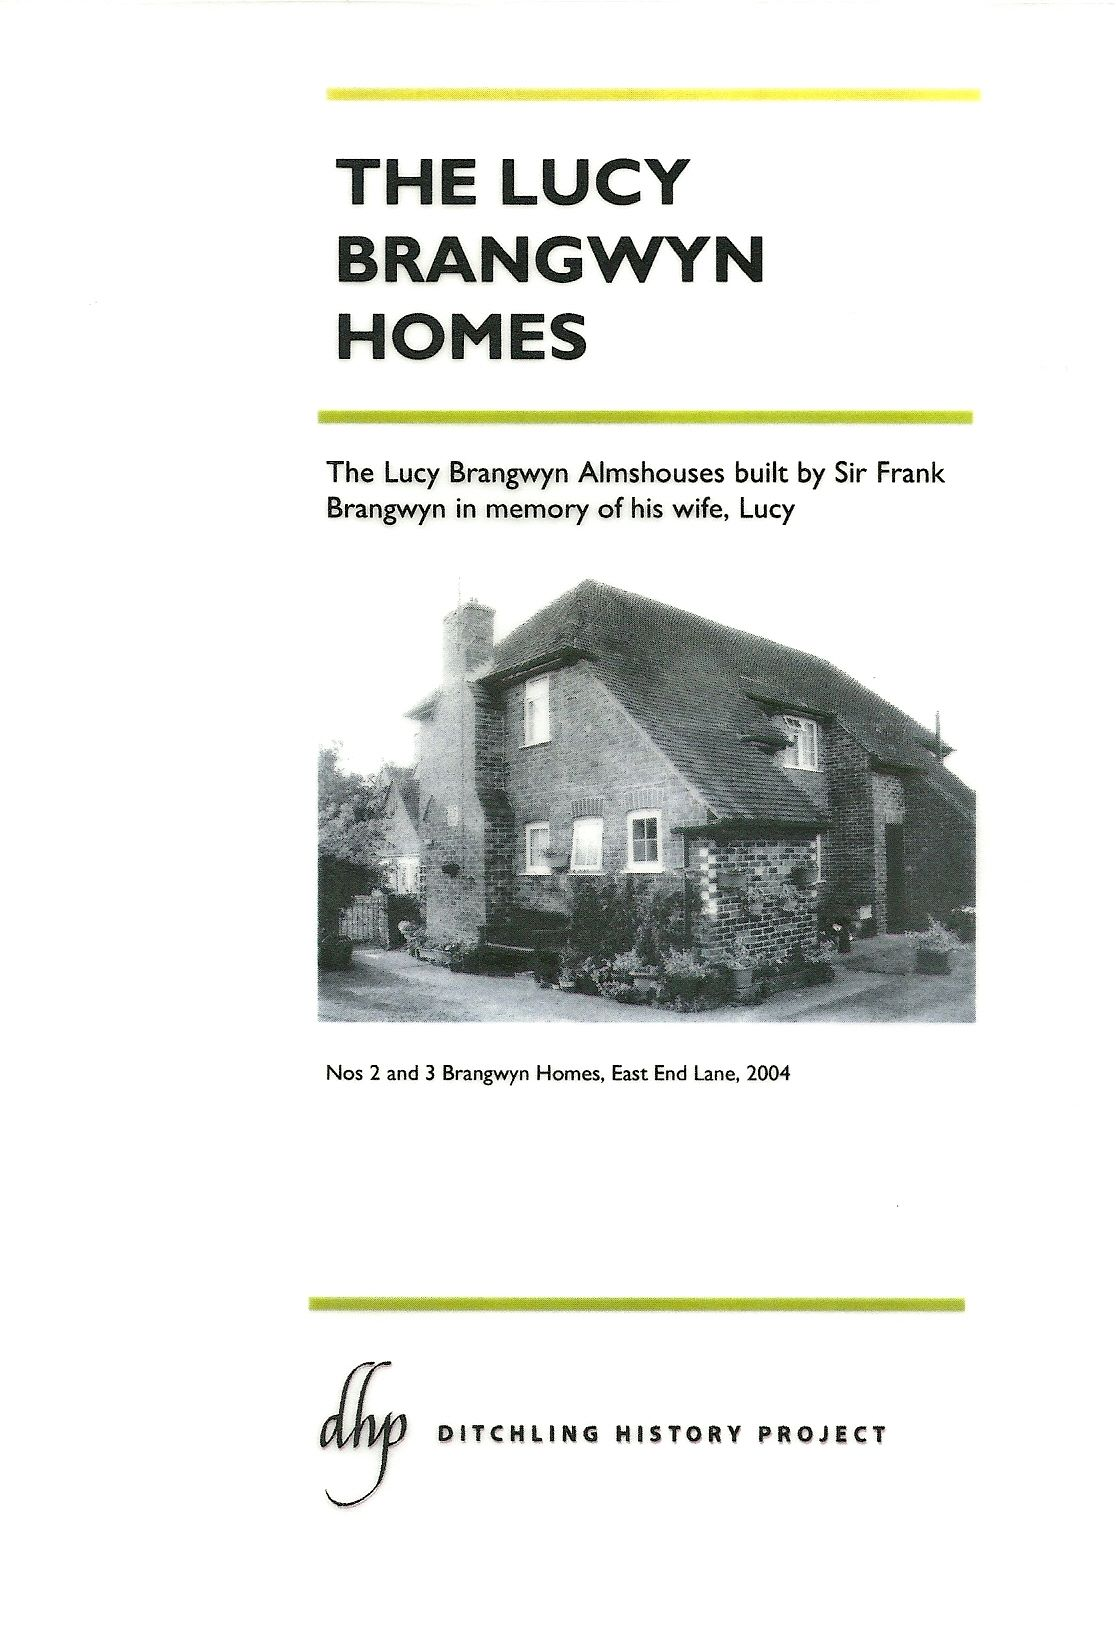 Lucy Brangwyn Homes